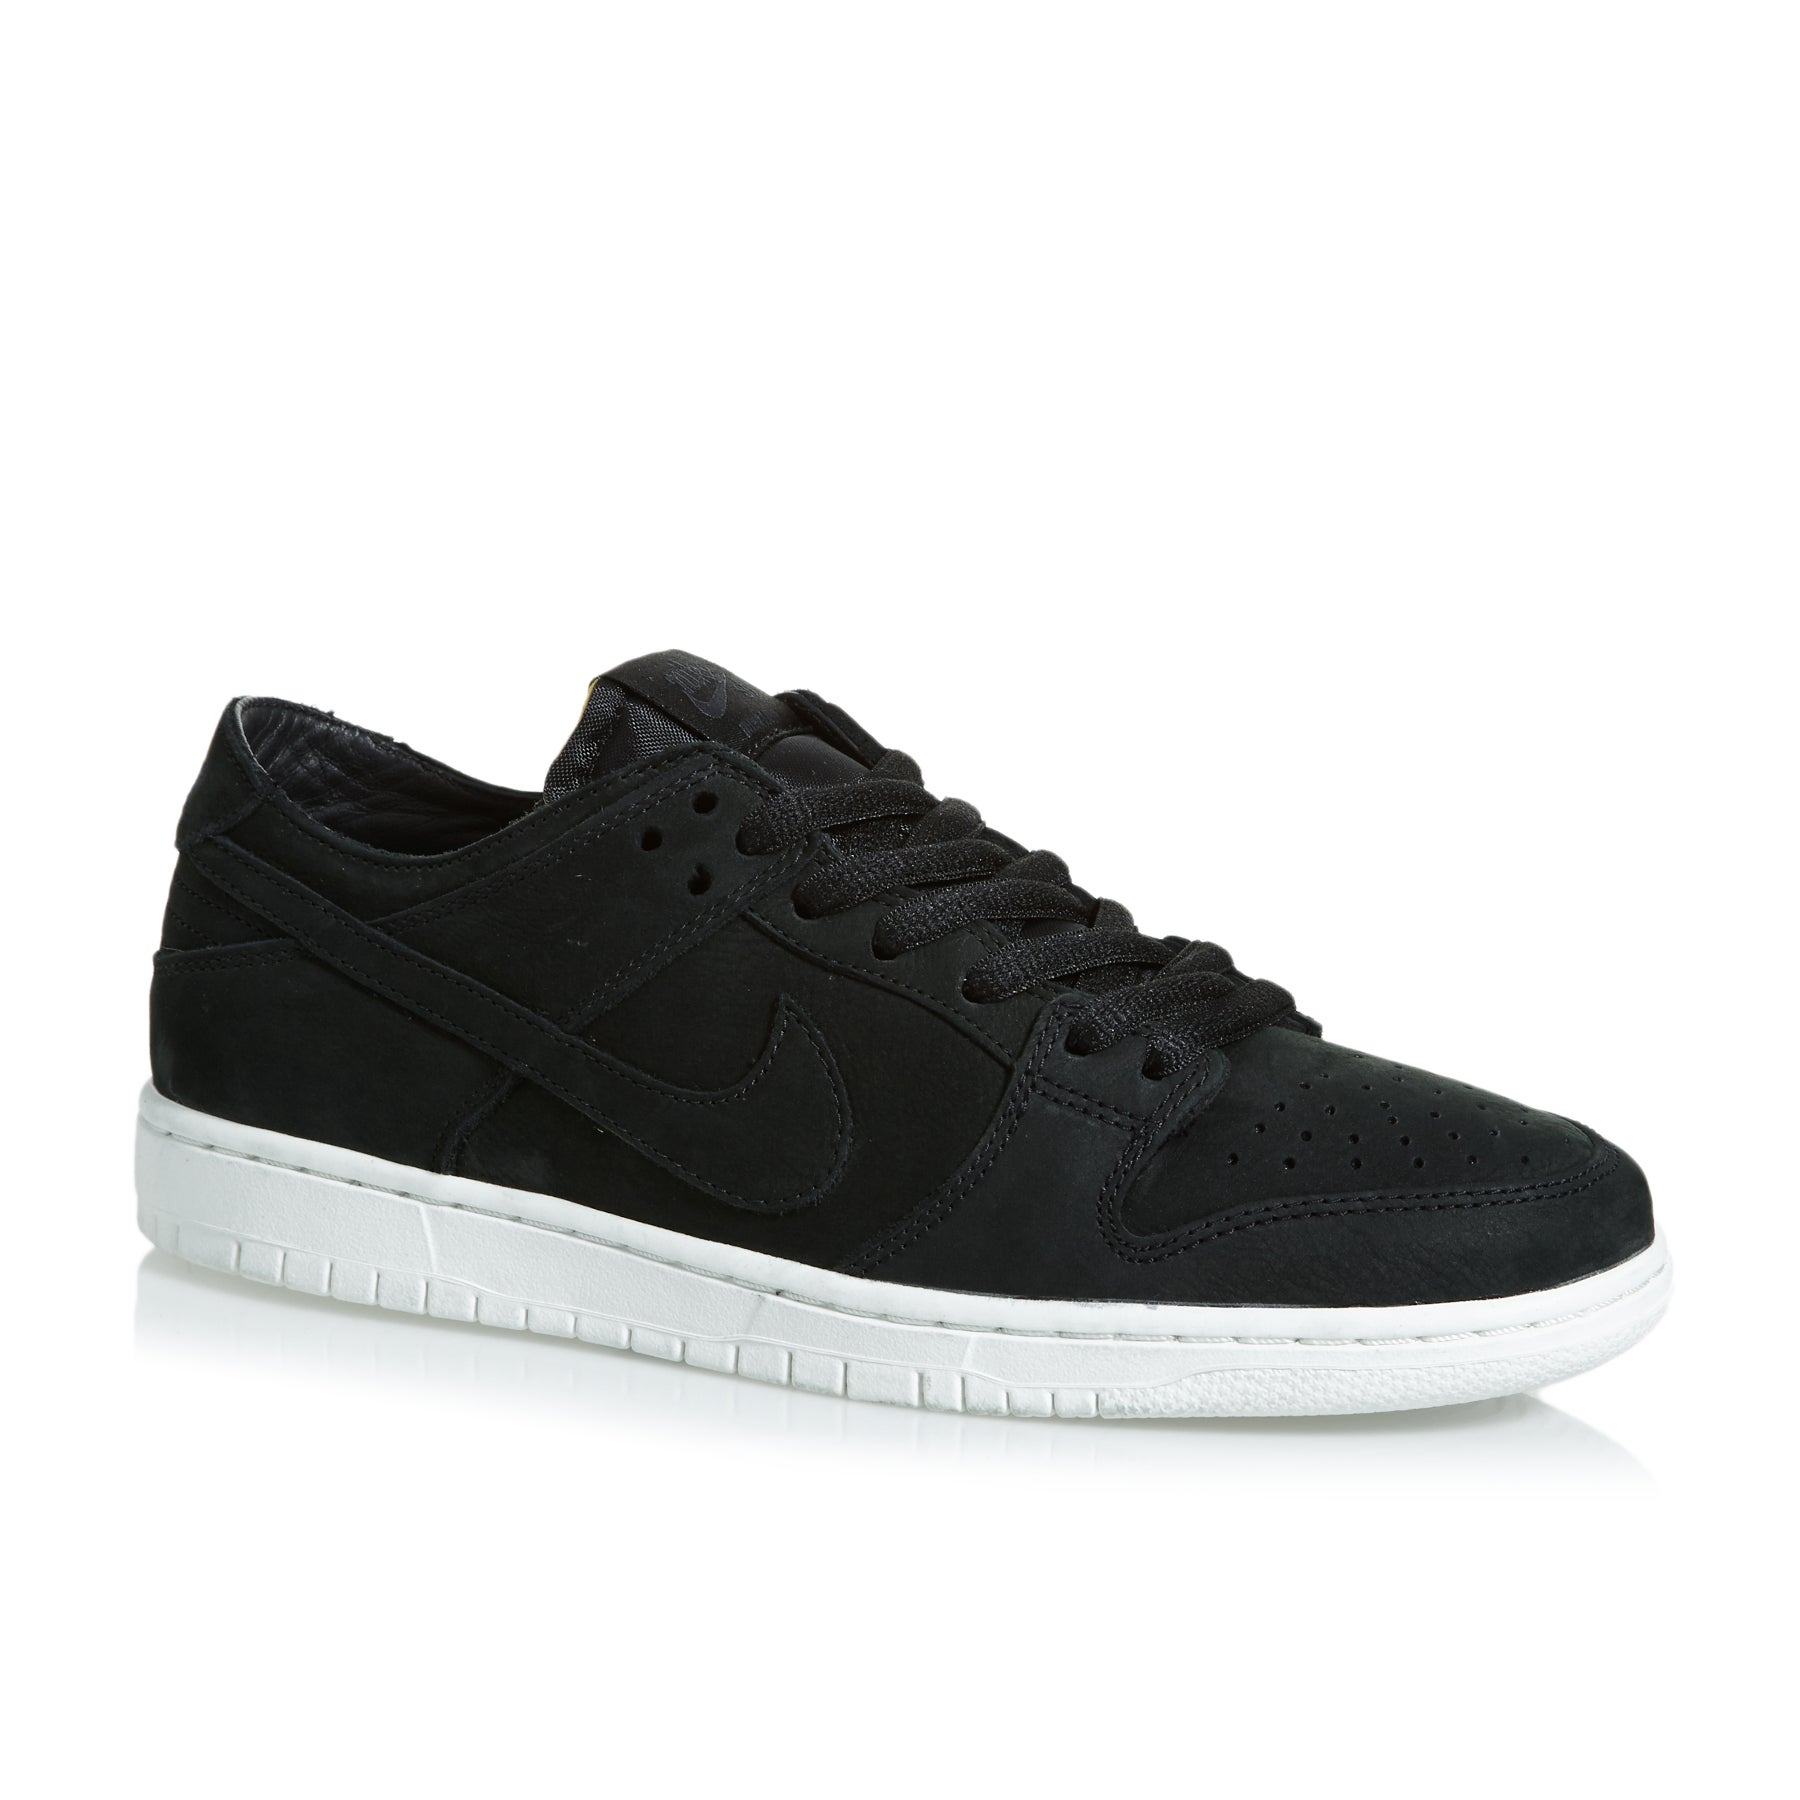 Nike SB Zoom Dunk Low Pro Mens Shoes